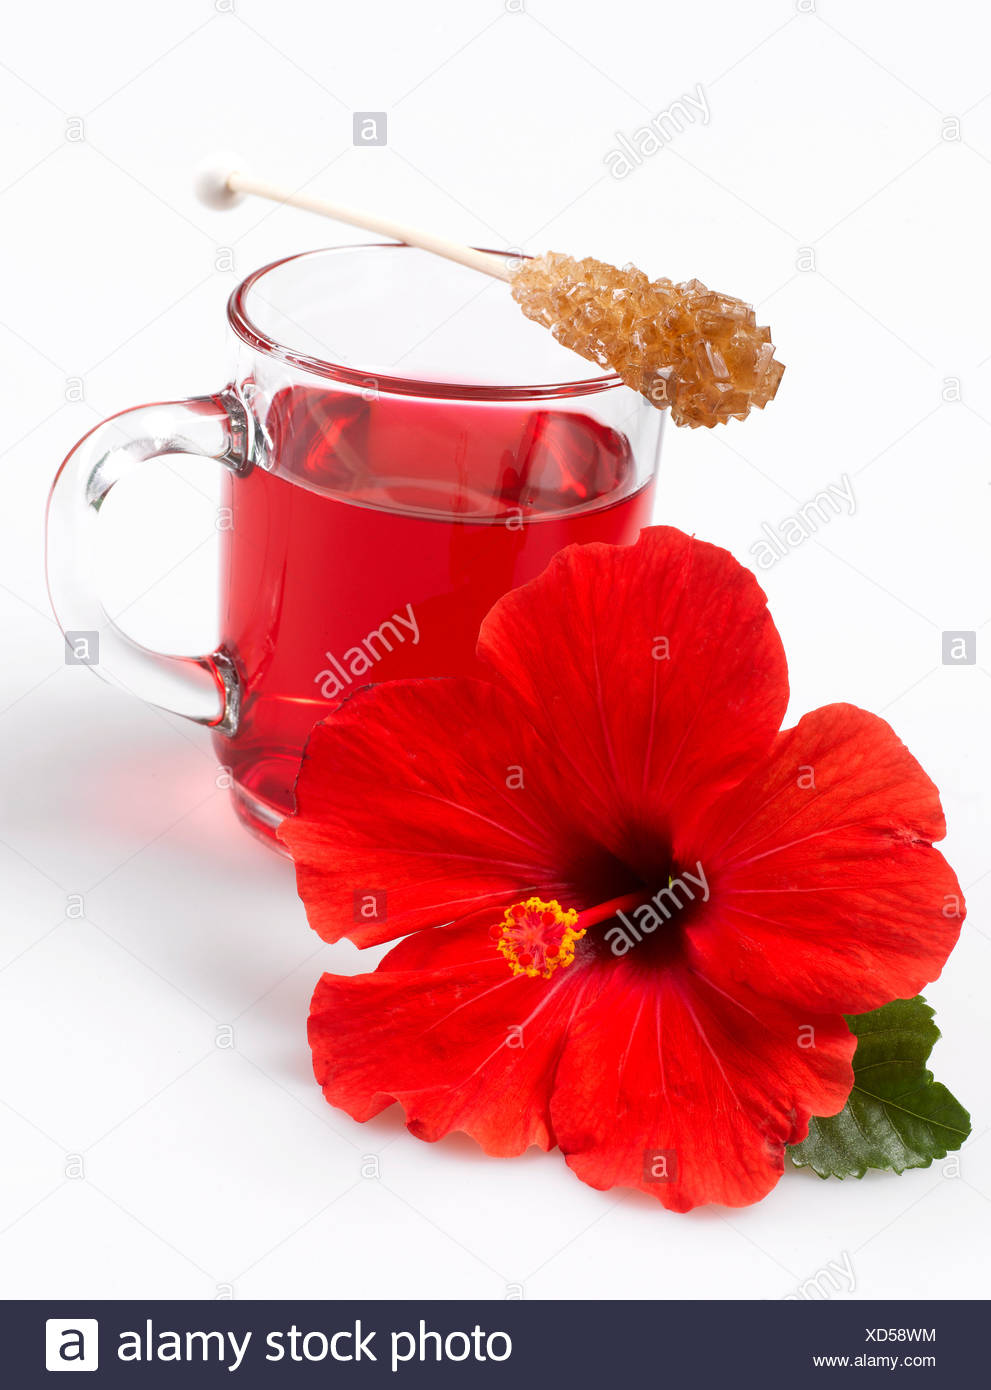 Sugar flowers stock photos sugar flowers stock images page 6 alamy hibiscus flower tea and hibiscus flower stock image izmirmasajfo